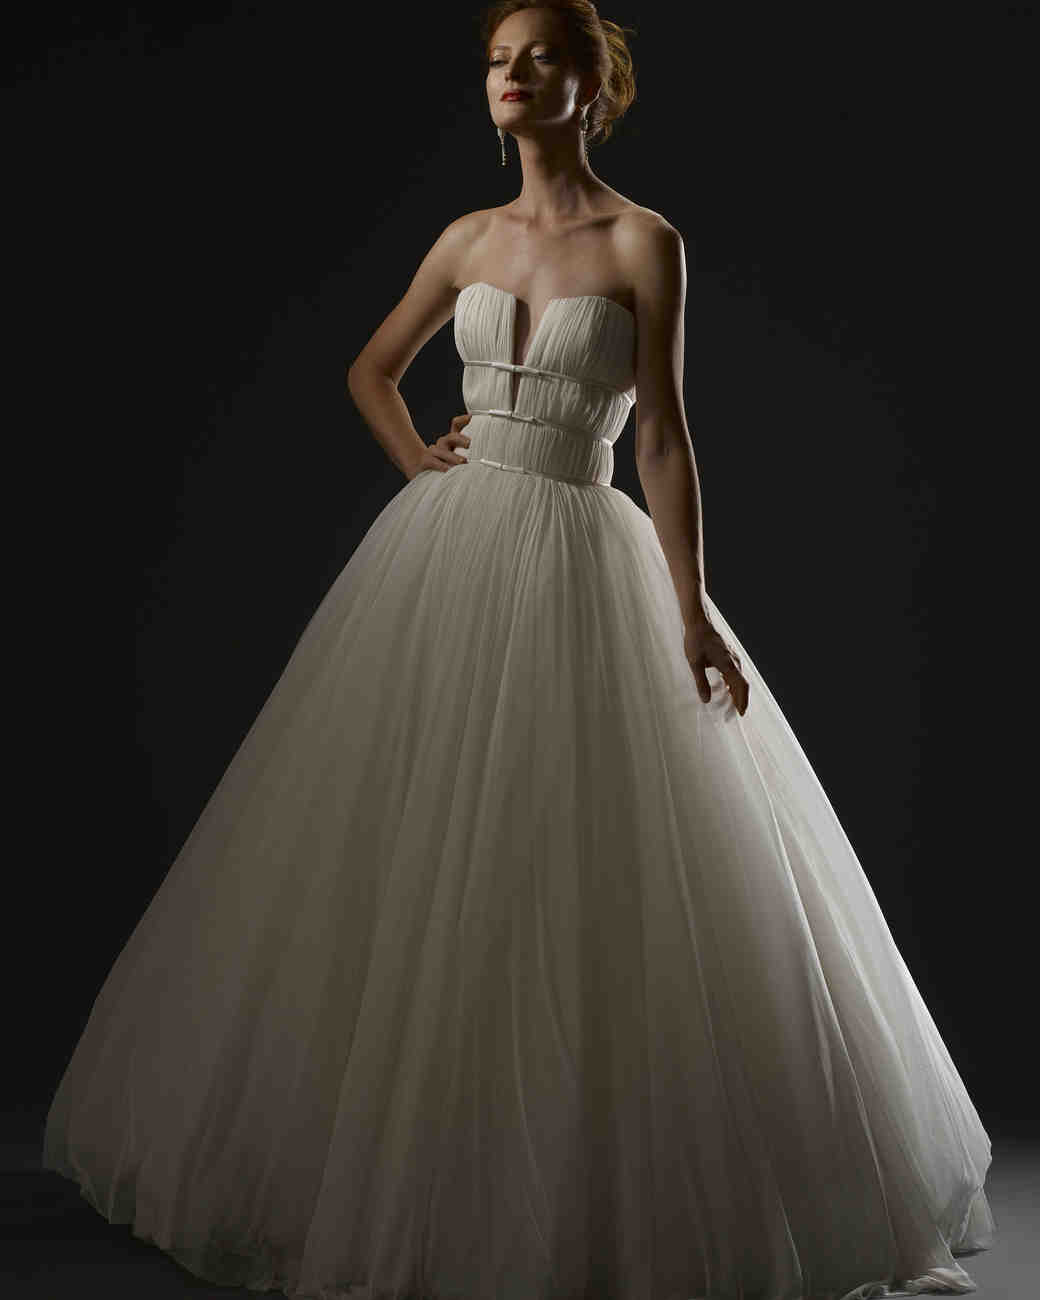 steven birnbaum fall 2019 wedding dress ball gown with plunging neckline